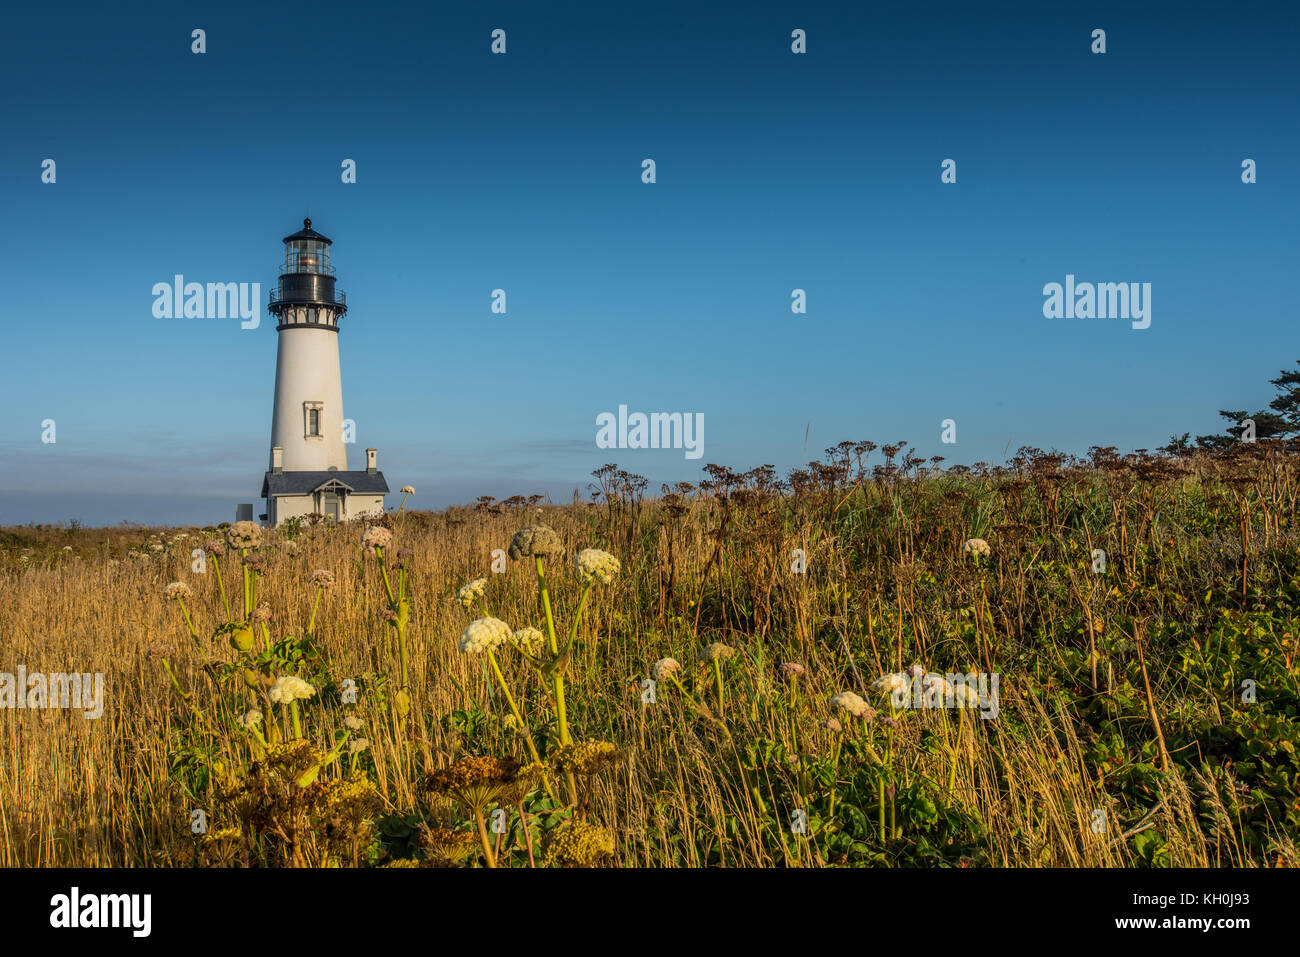 Yaquina Head Lighthouse Sits in Field of Wild Flowers along Oregon coast - Stock Image